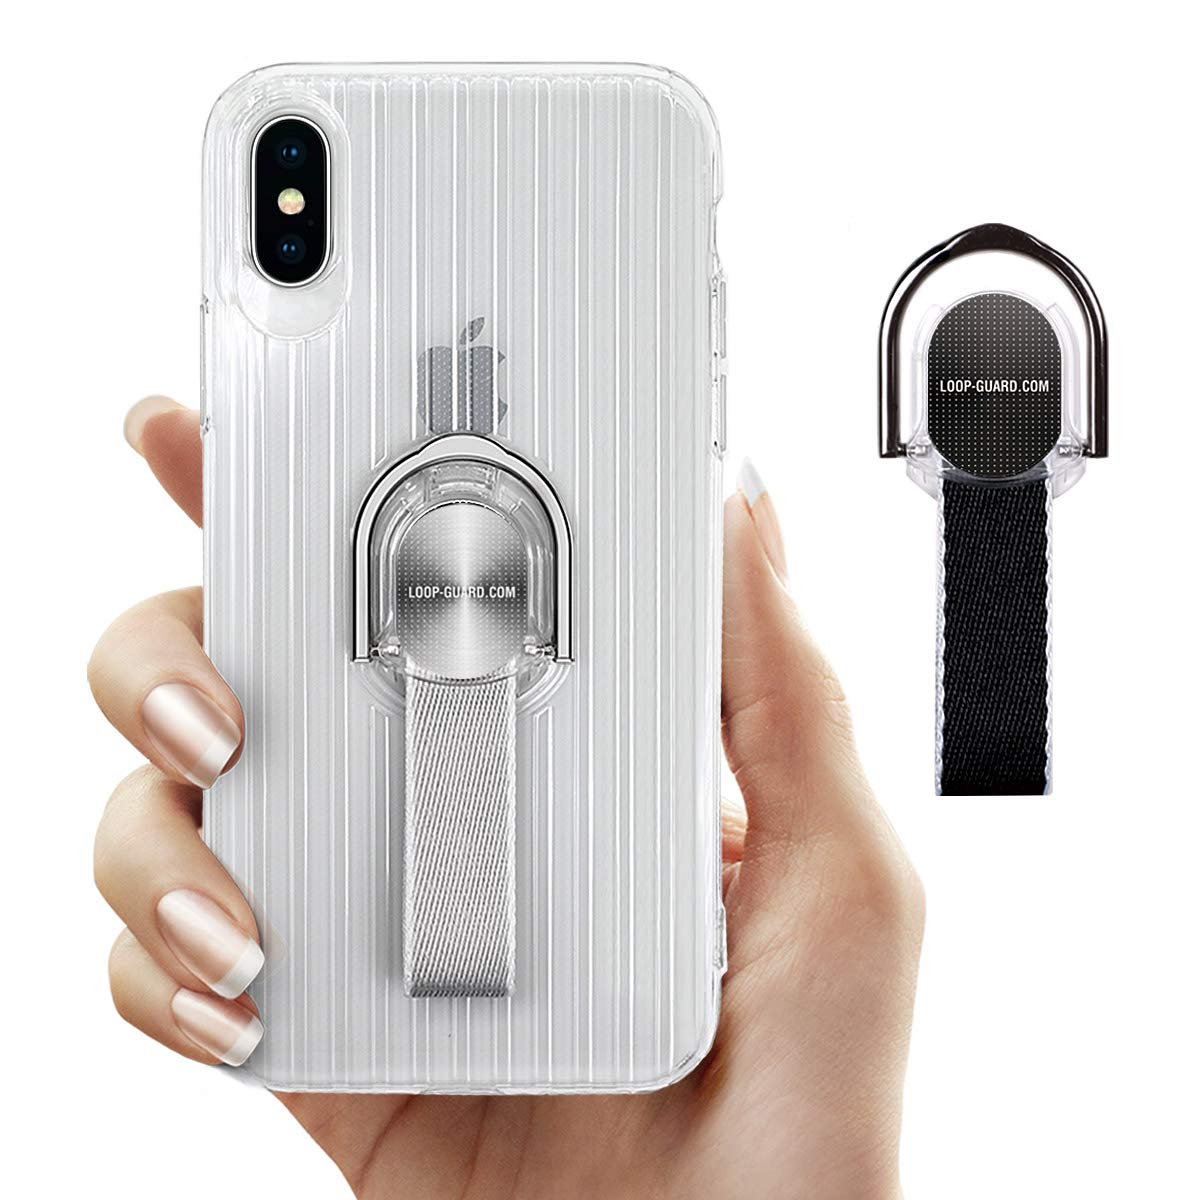 iPhone X Case with Ring Kickstand & Finger Straps, Crystal Clear Soft TPU Cover with Black & Gray Finger Loop Grips for Apple iPhone X/10, Works with Magnetic Mount & Wireless Charger